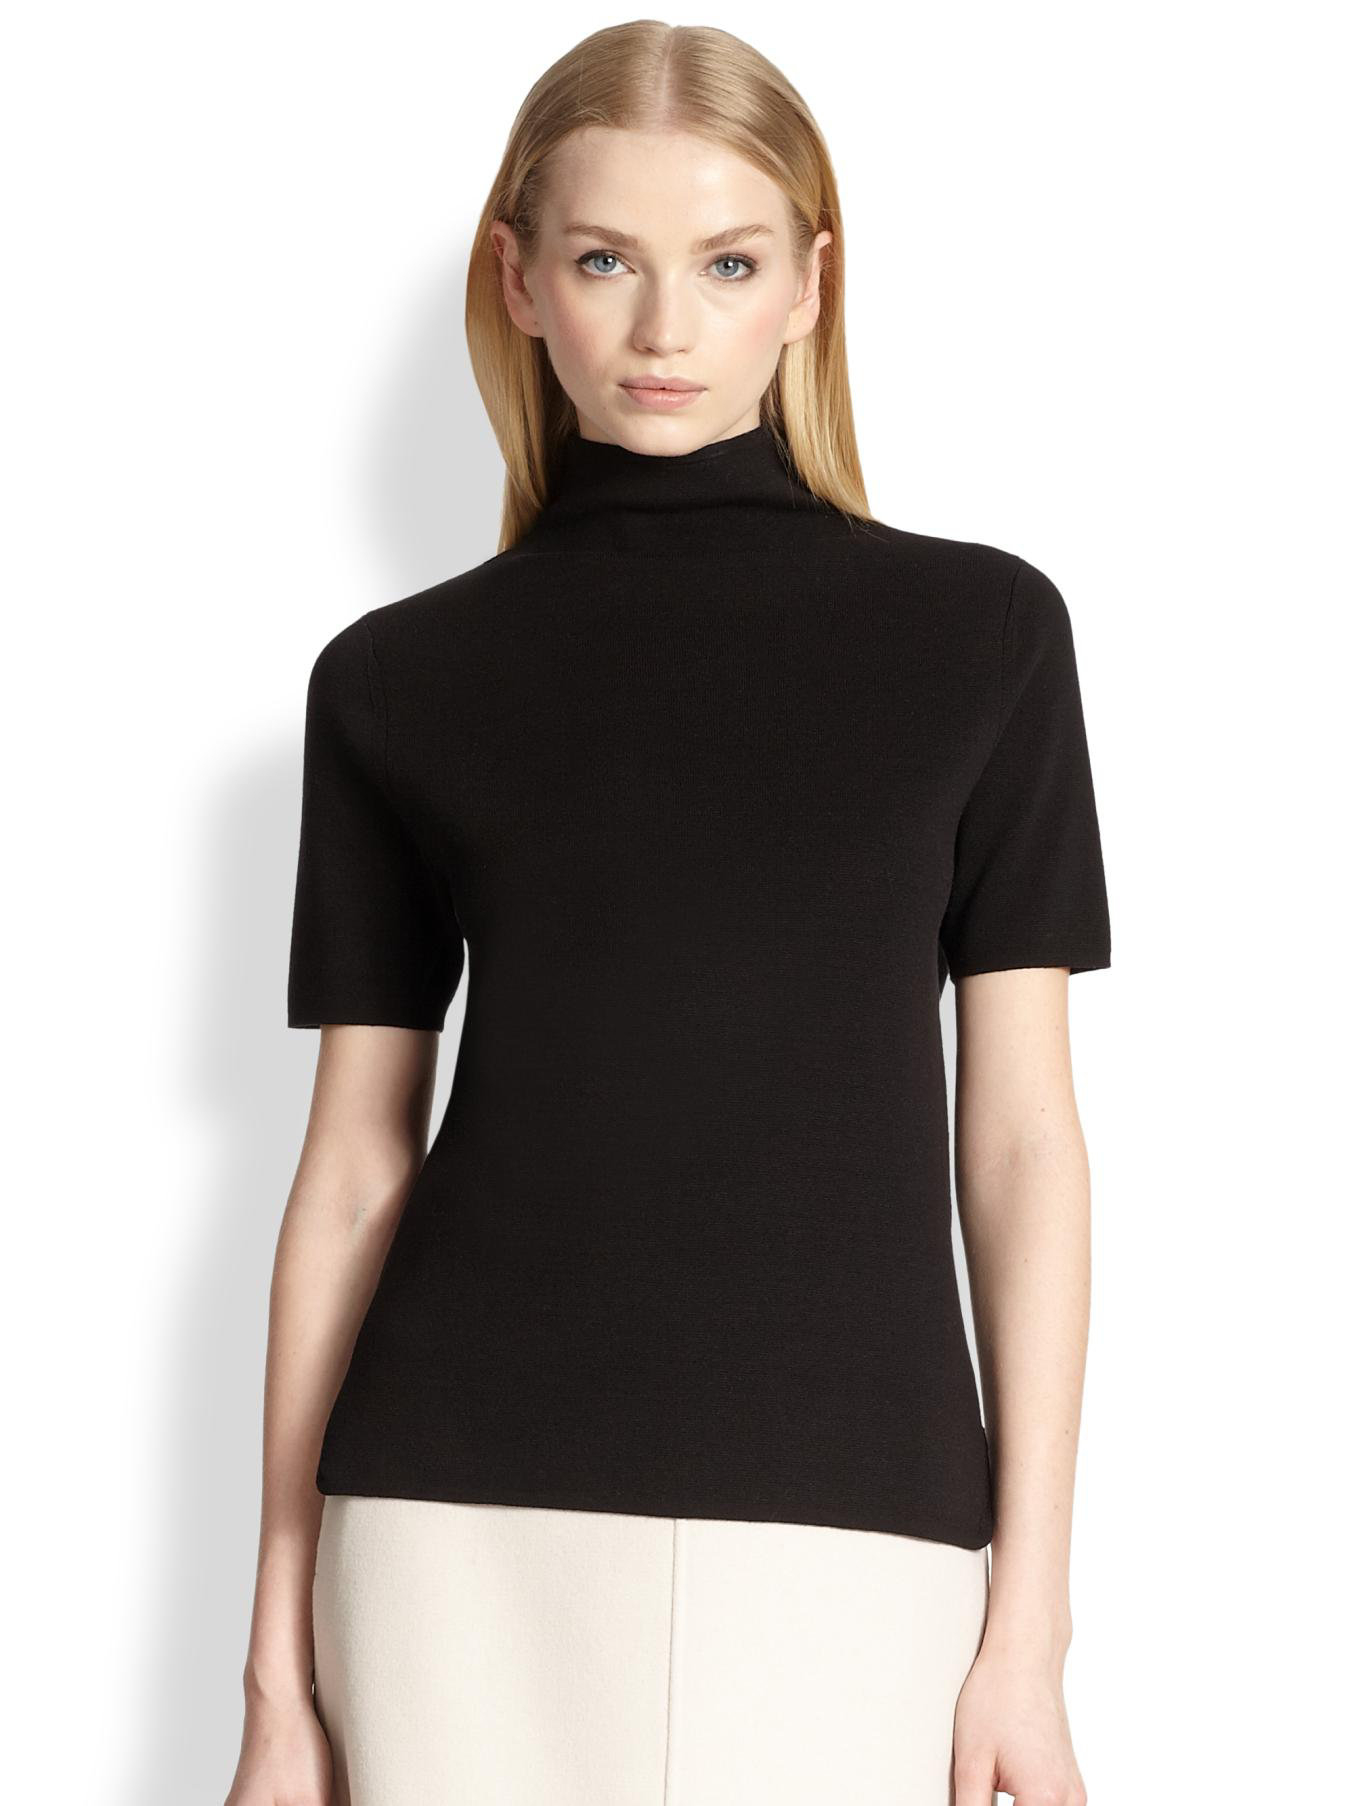 Max mara Silk Cotton Turtleneck Sweater in Black | Lyst